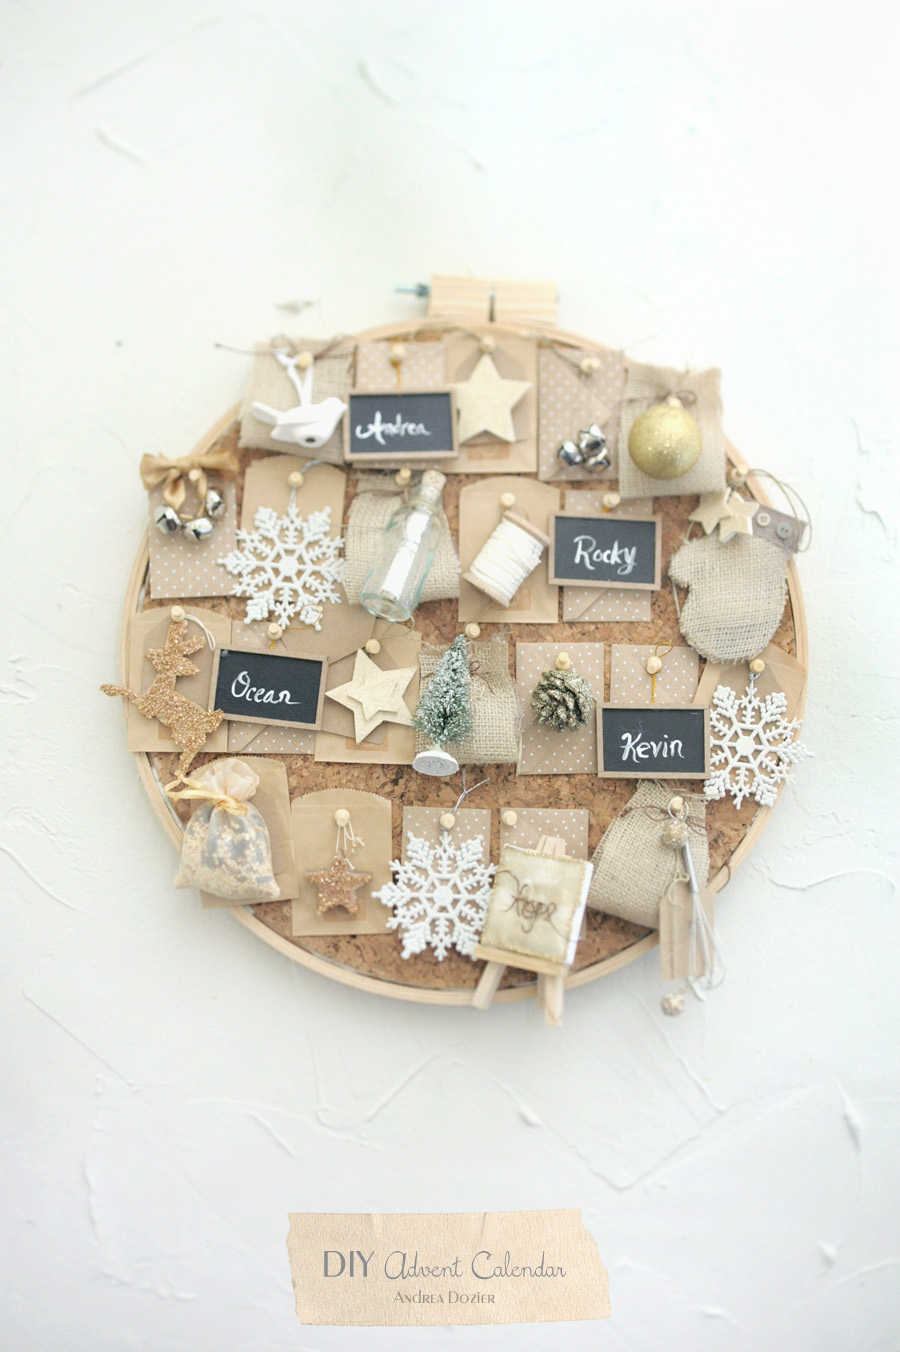 Diy Calendar For Him : Diy advent calendar andrea dozier dayton wedding